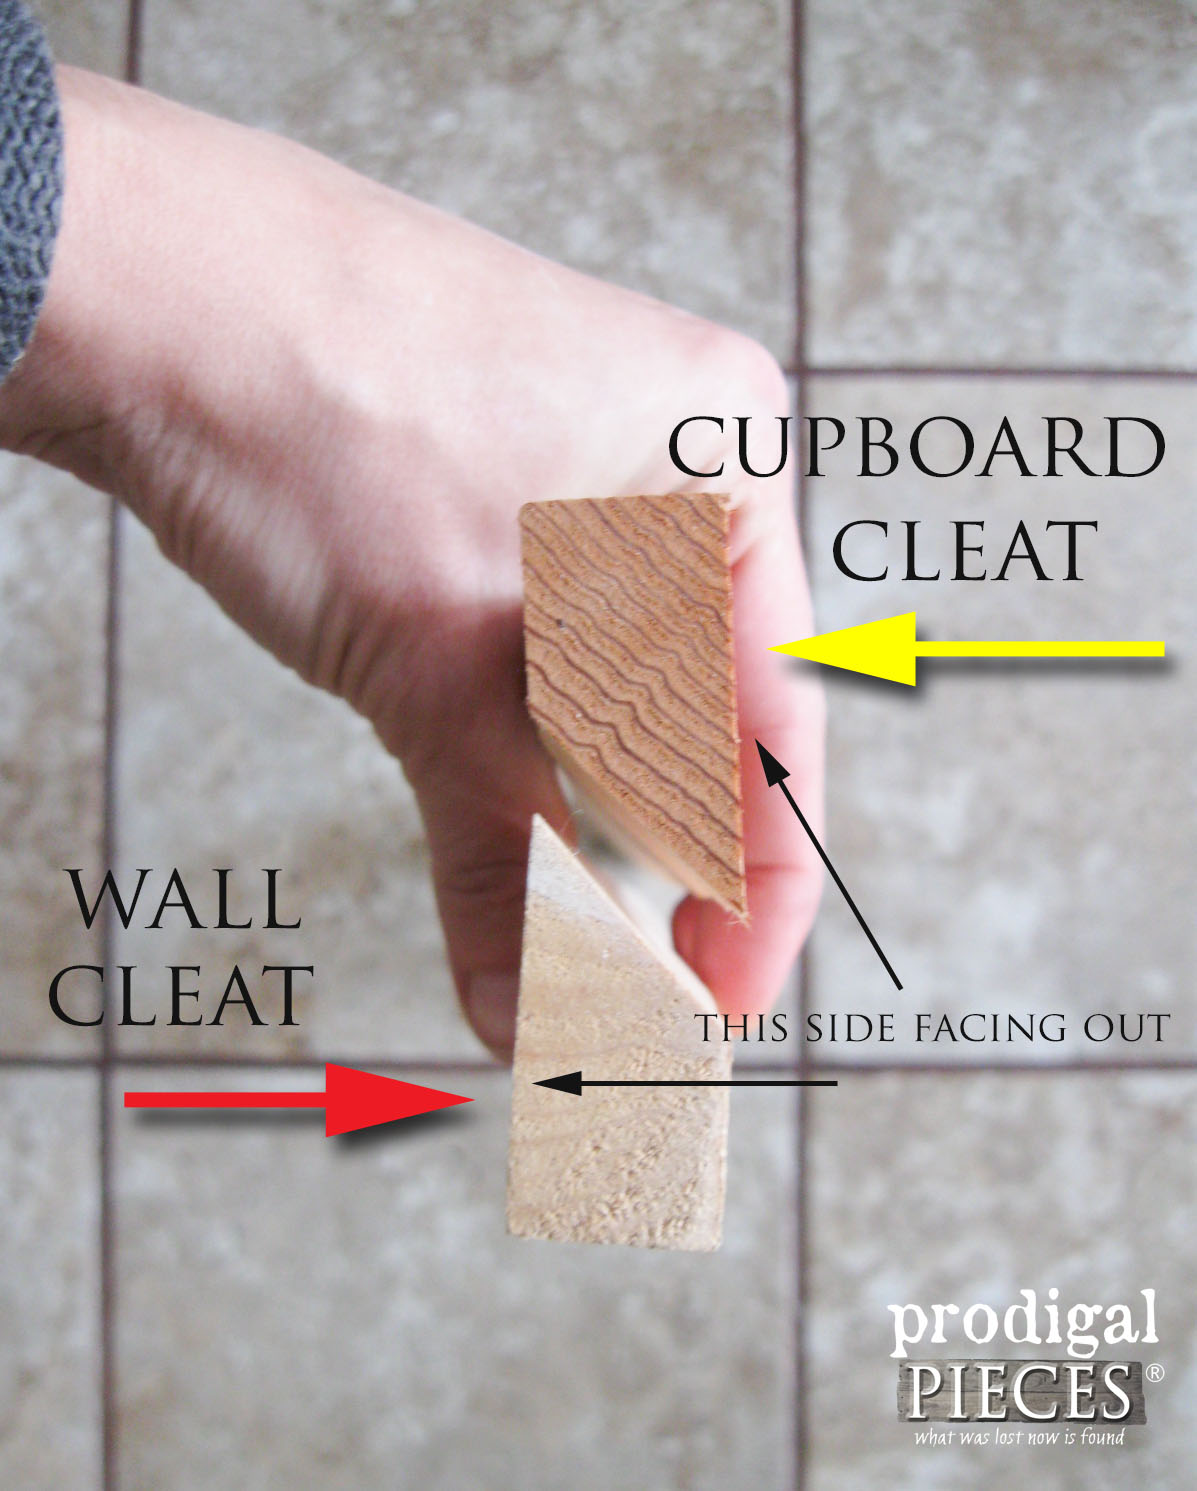 DIY Wall Cleat Diagram by Prodigal Pieces | prodigalpieces.com